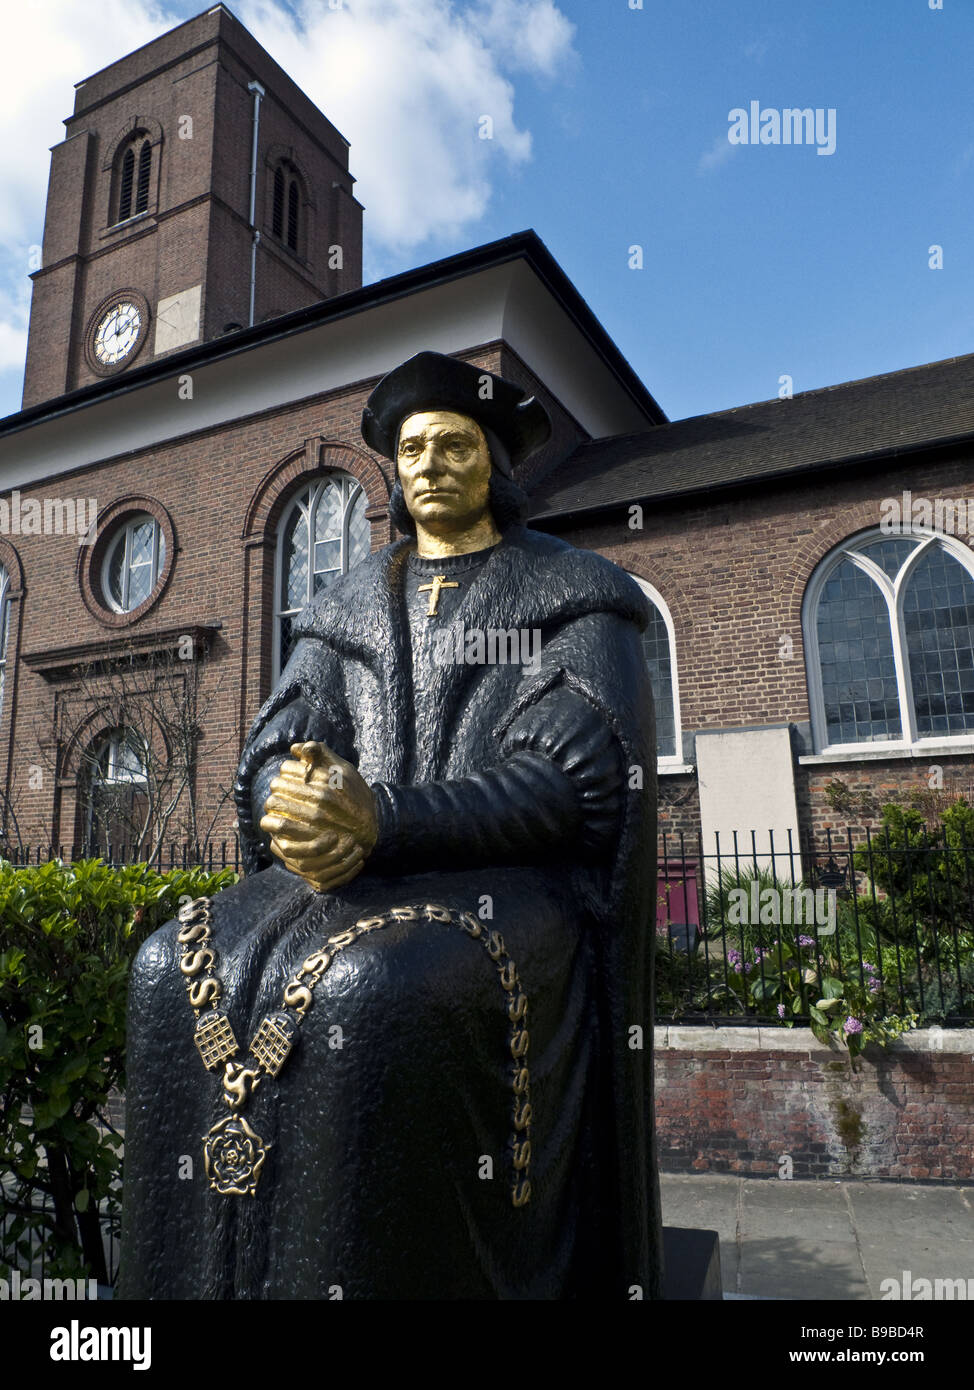 Statue of Sir Thomas More, Chelsea - Stock Image